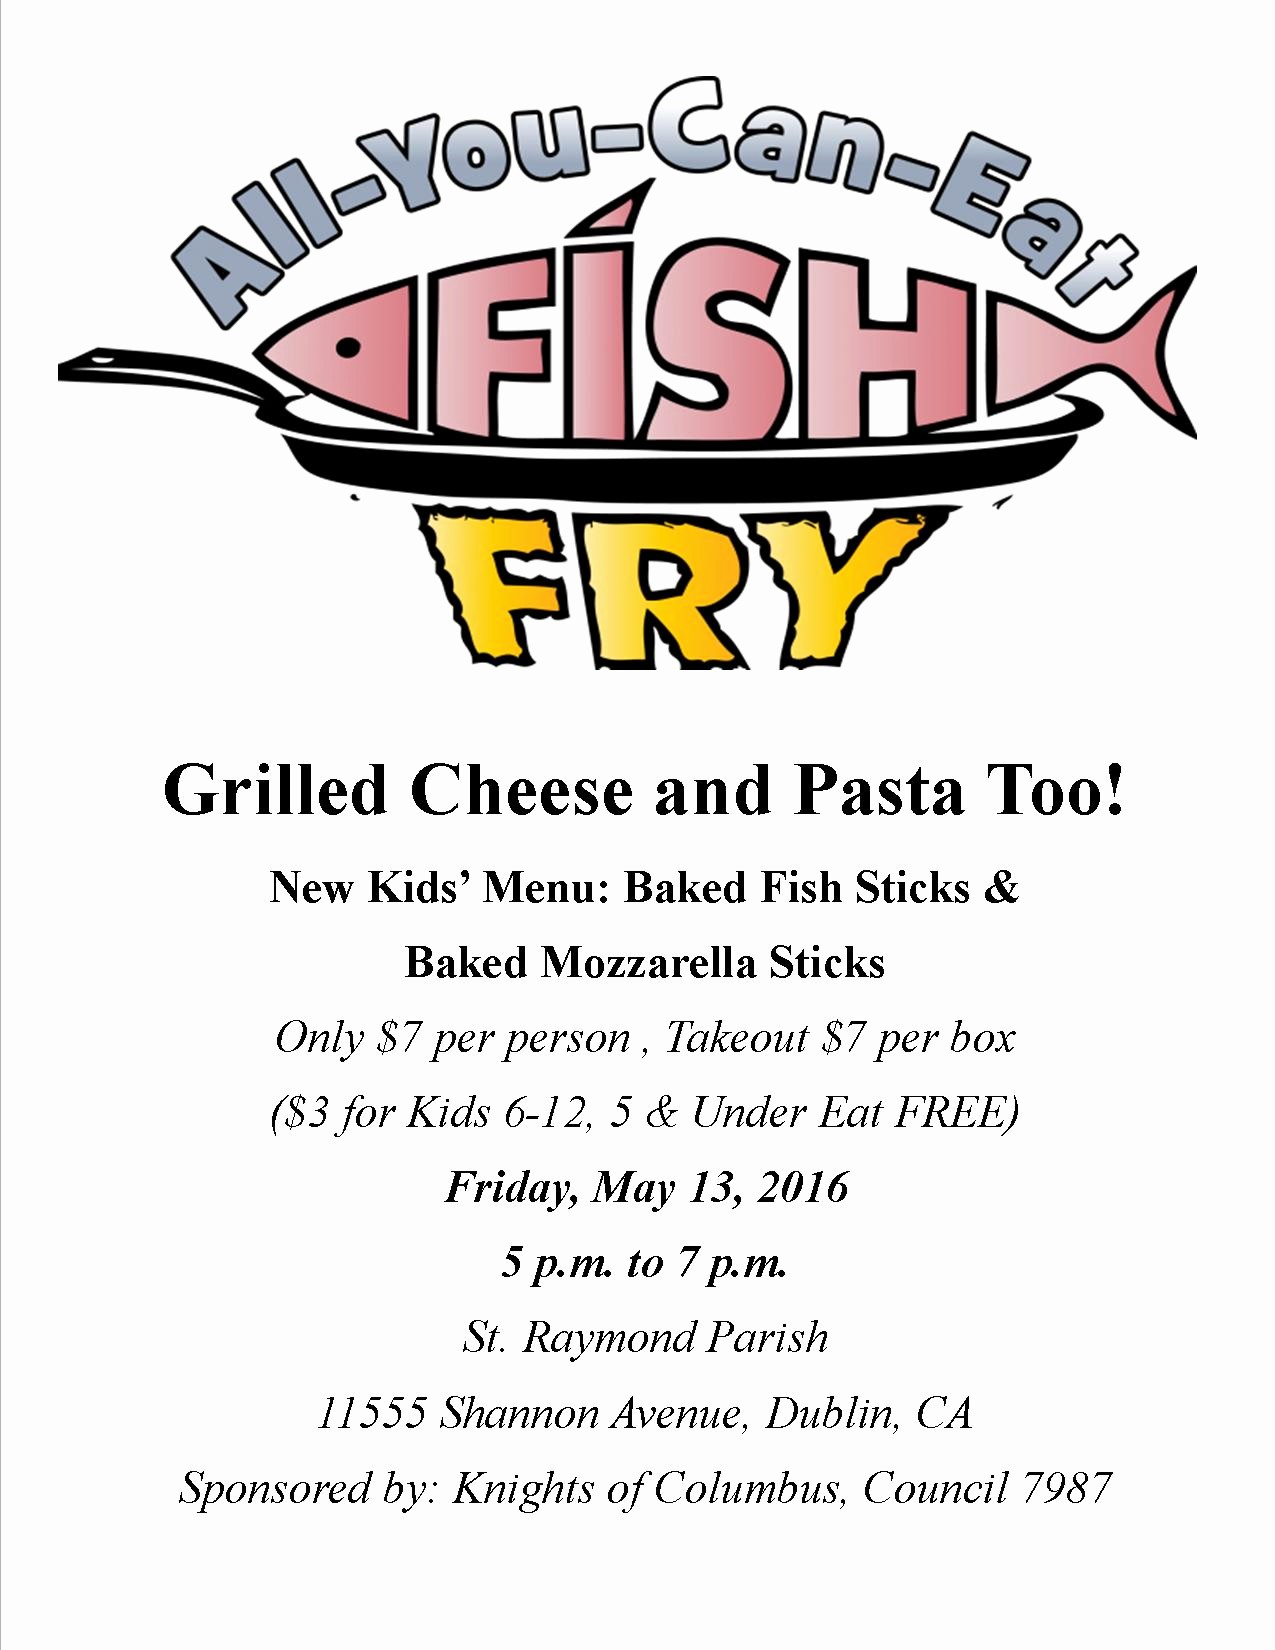 Free Fish Fry Flyer Template Awesome St Raymond Catholic Church – Next Fish Fry – May 13th 2016